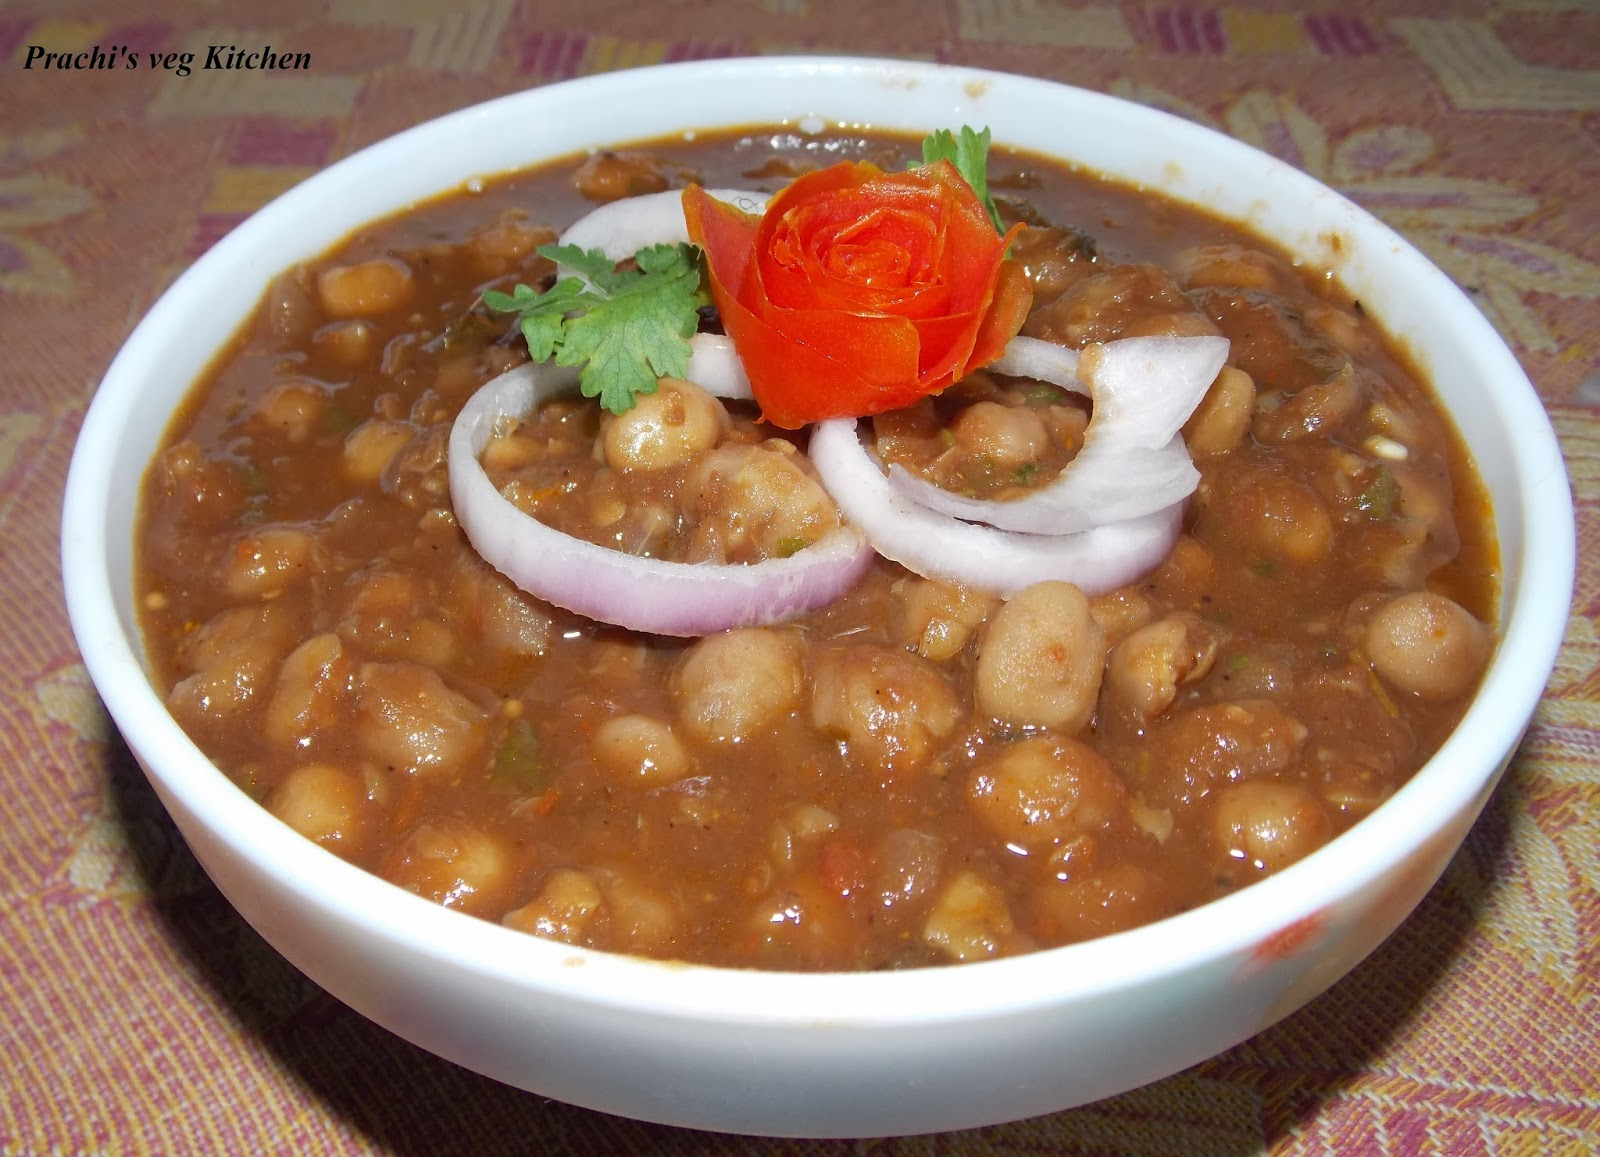 Prachi's veg kitchen: Chole recipe/Panjabi chole/ masala chole